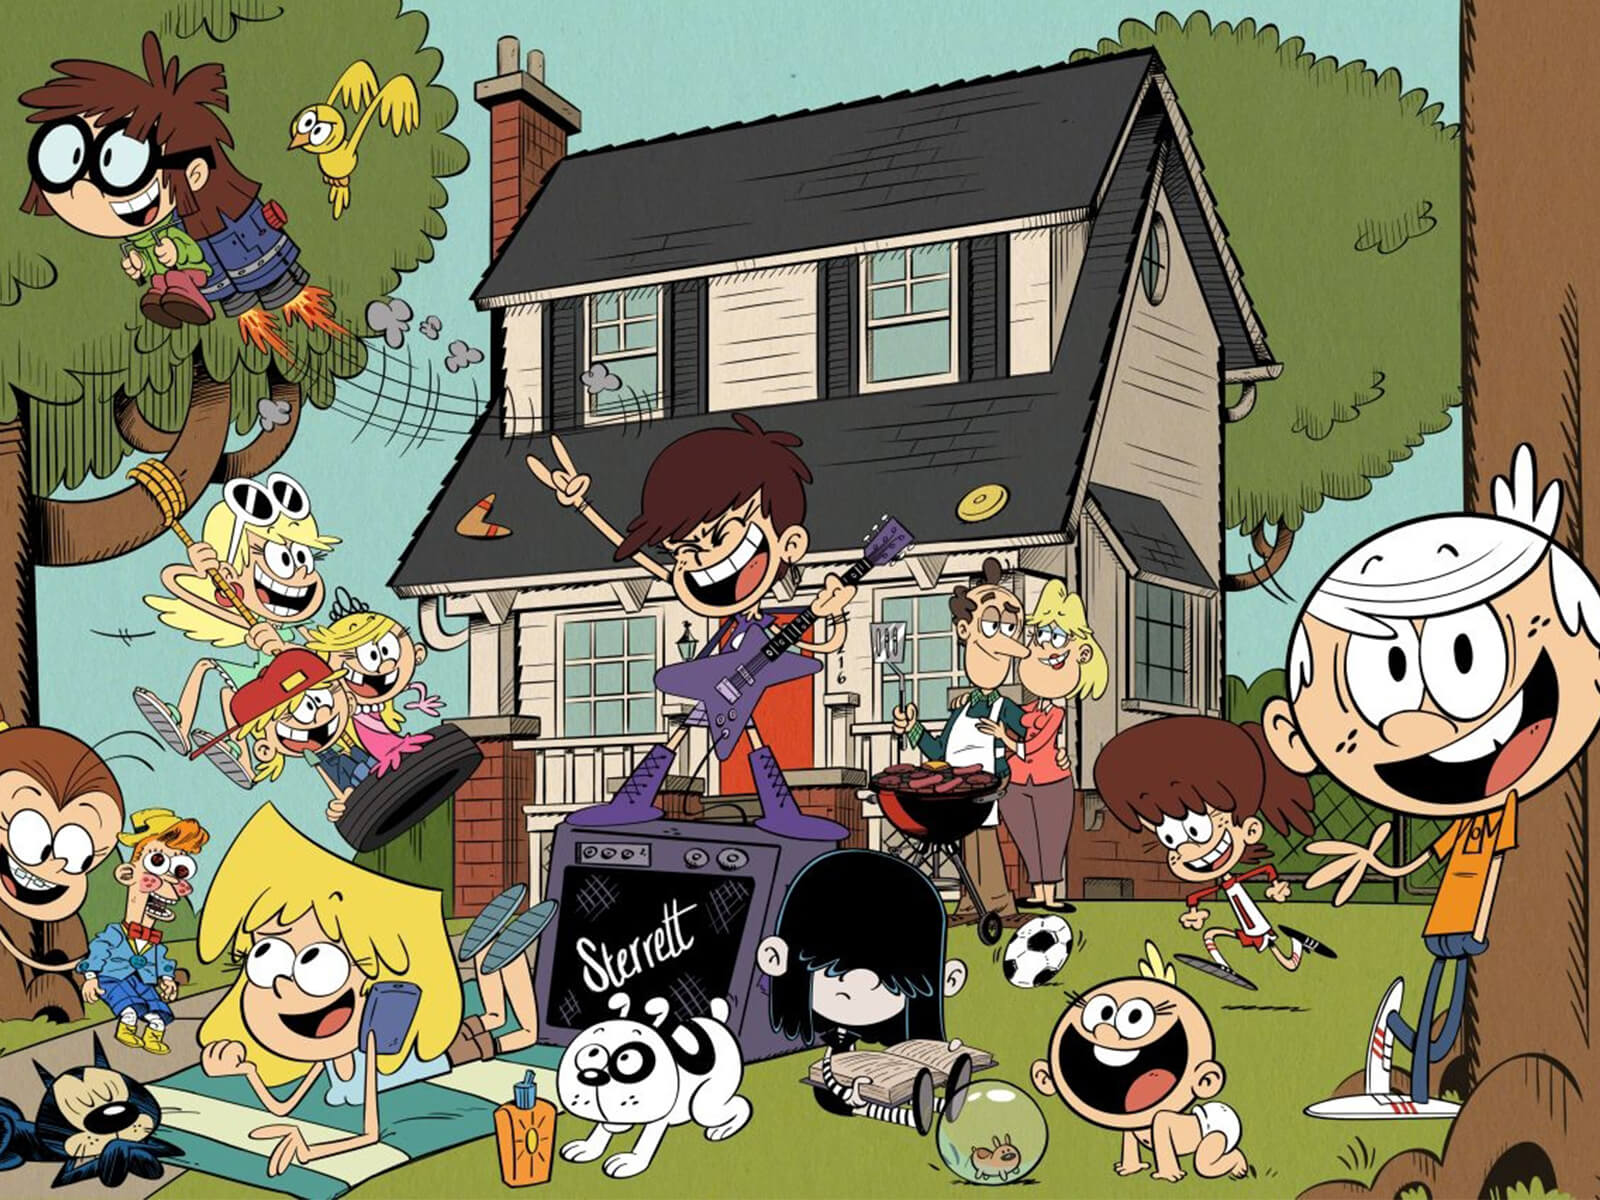 A drawing from Nickelodeon's The Loud House depicting the chaotic Loud family on their front yard.